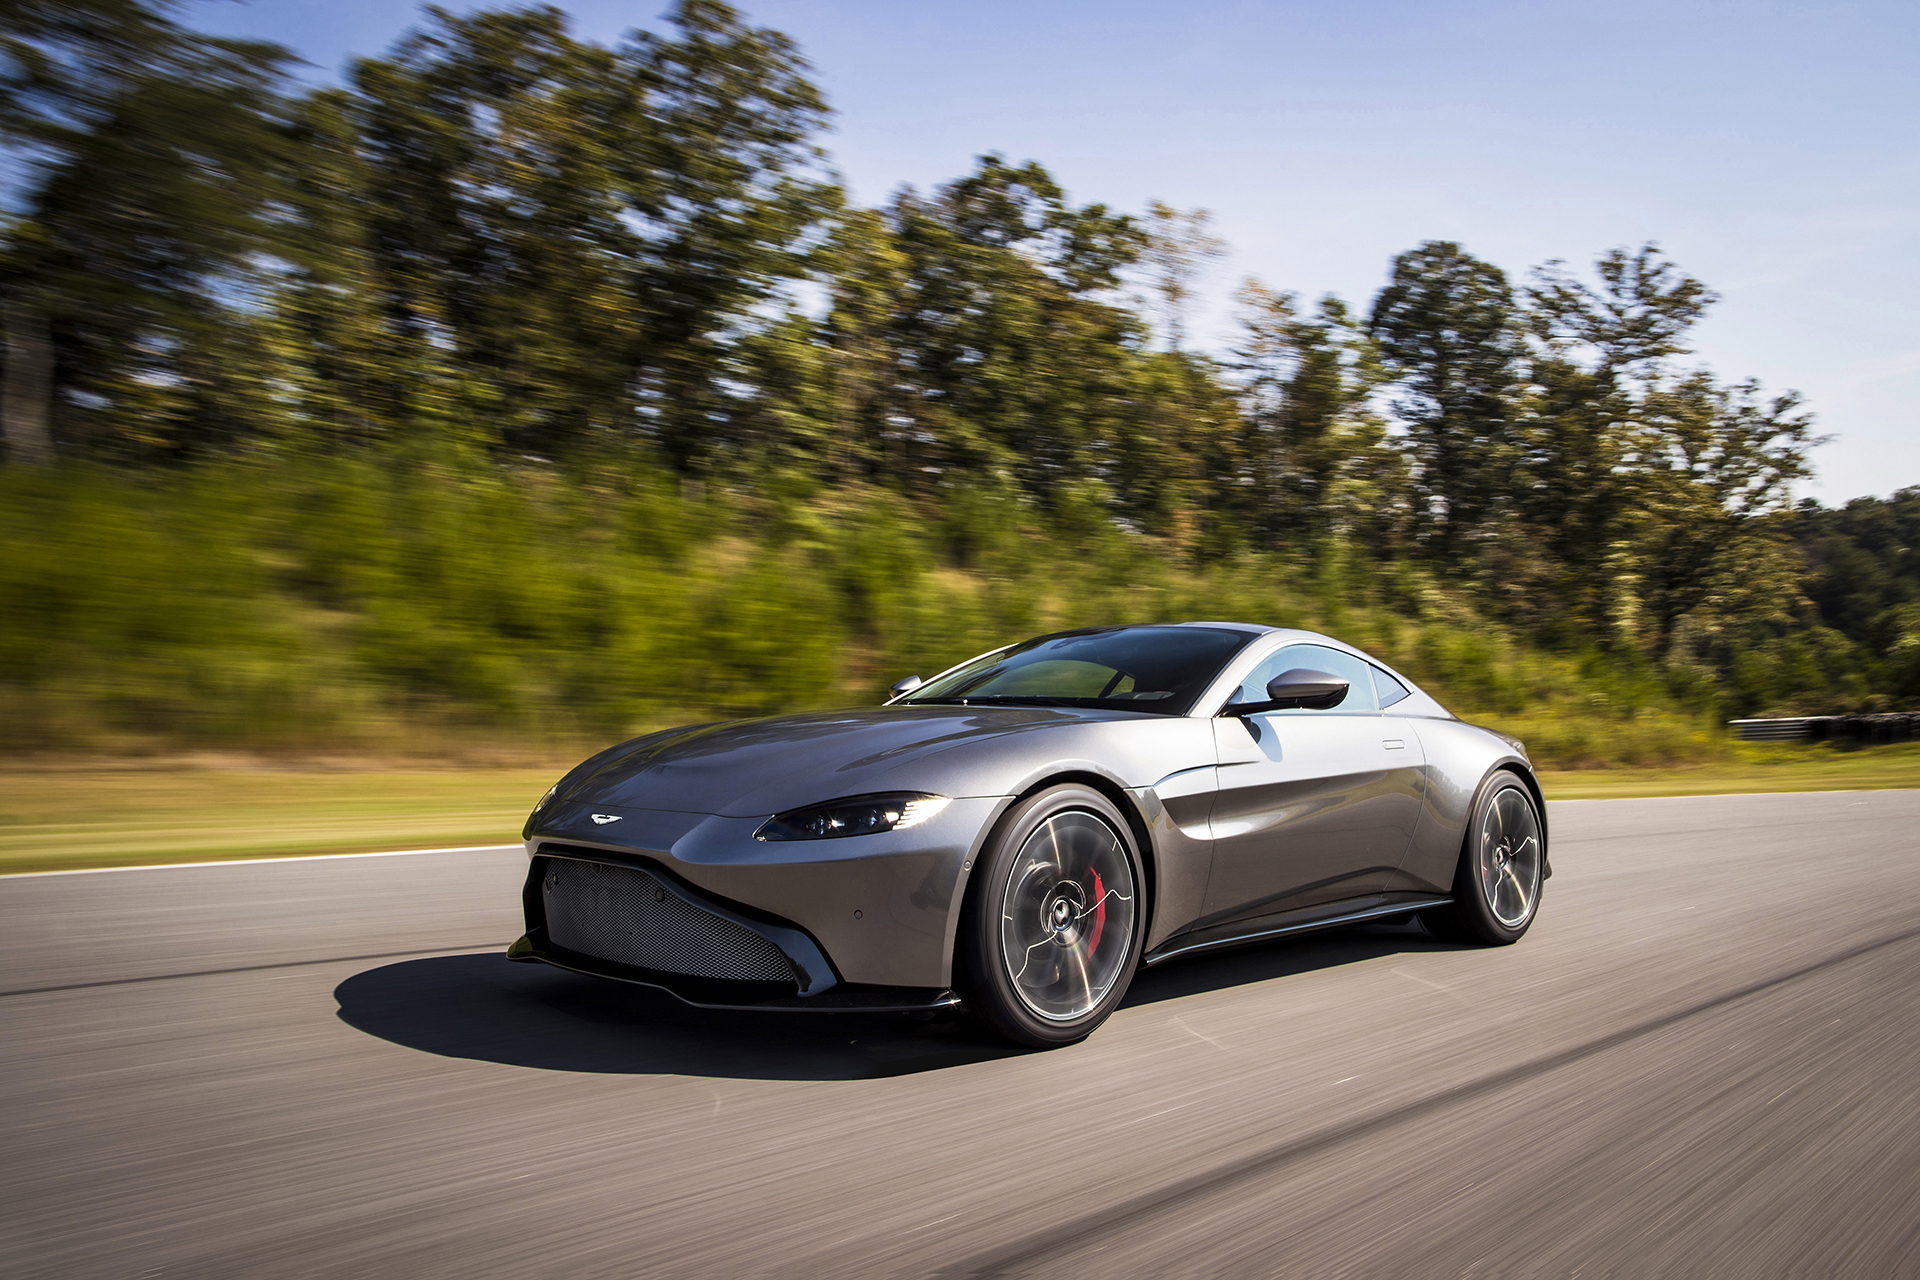 Aston Martin Just Announced The New Vantage And It s A 503 Hp Twin